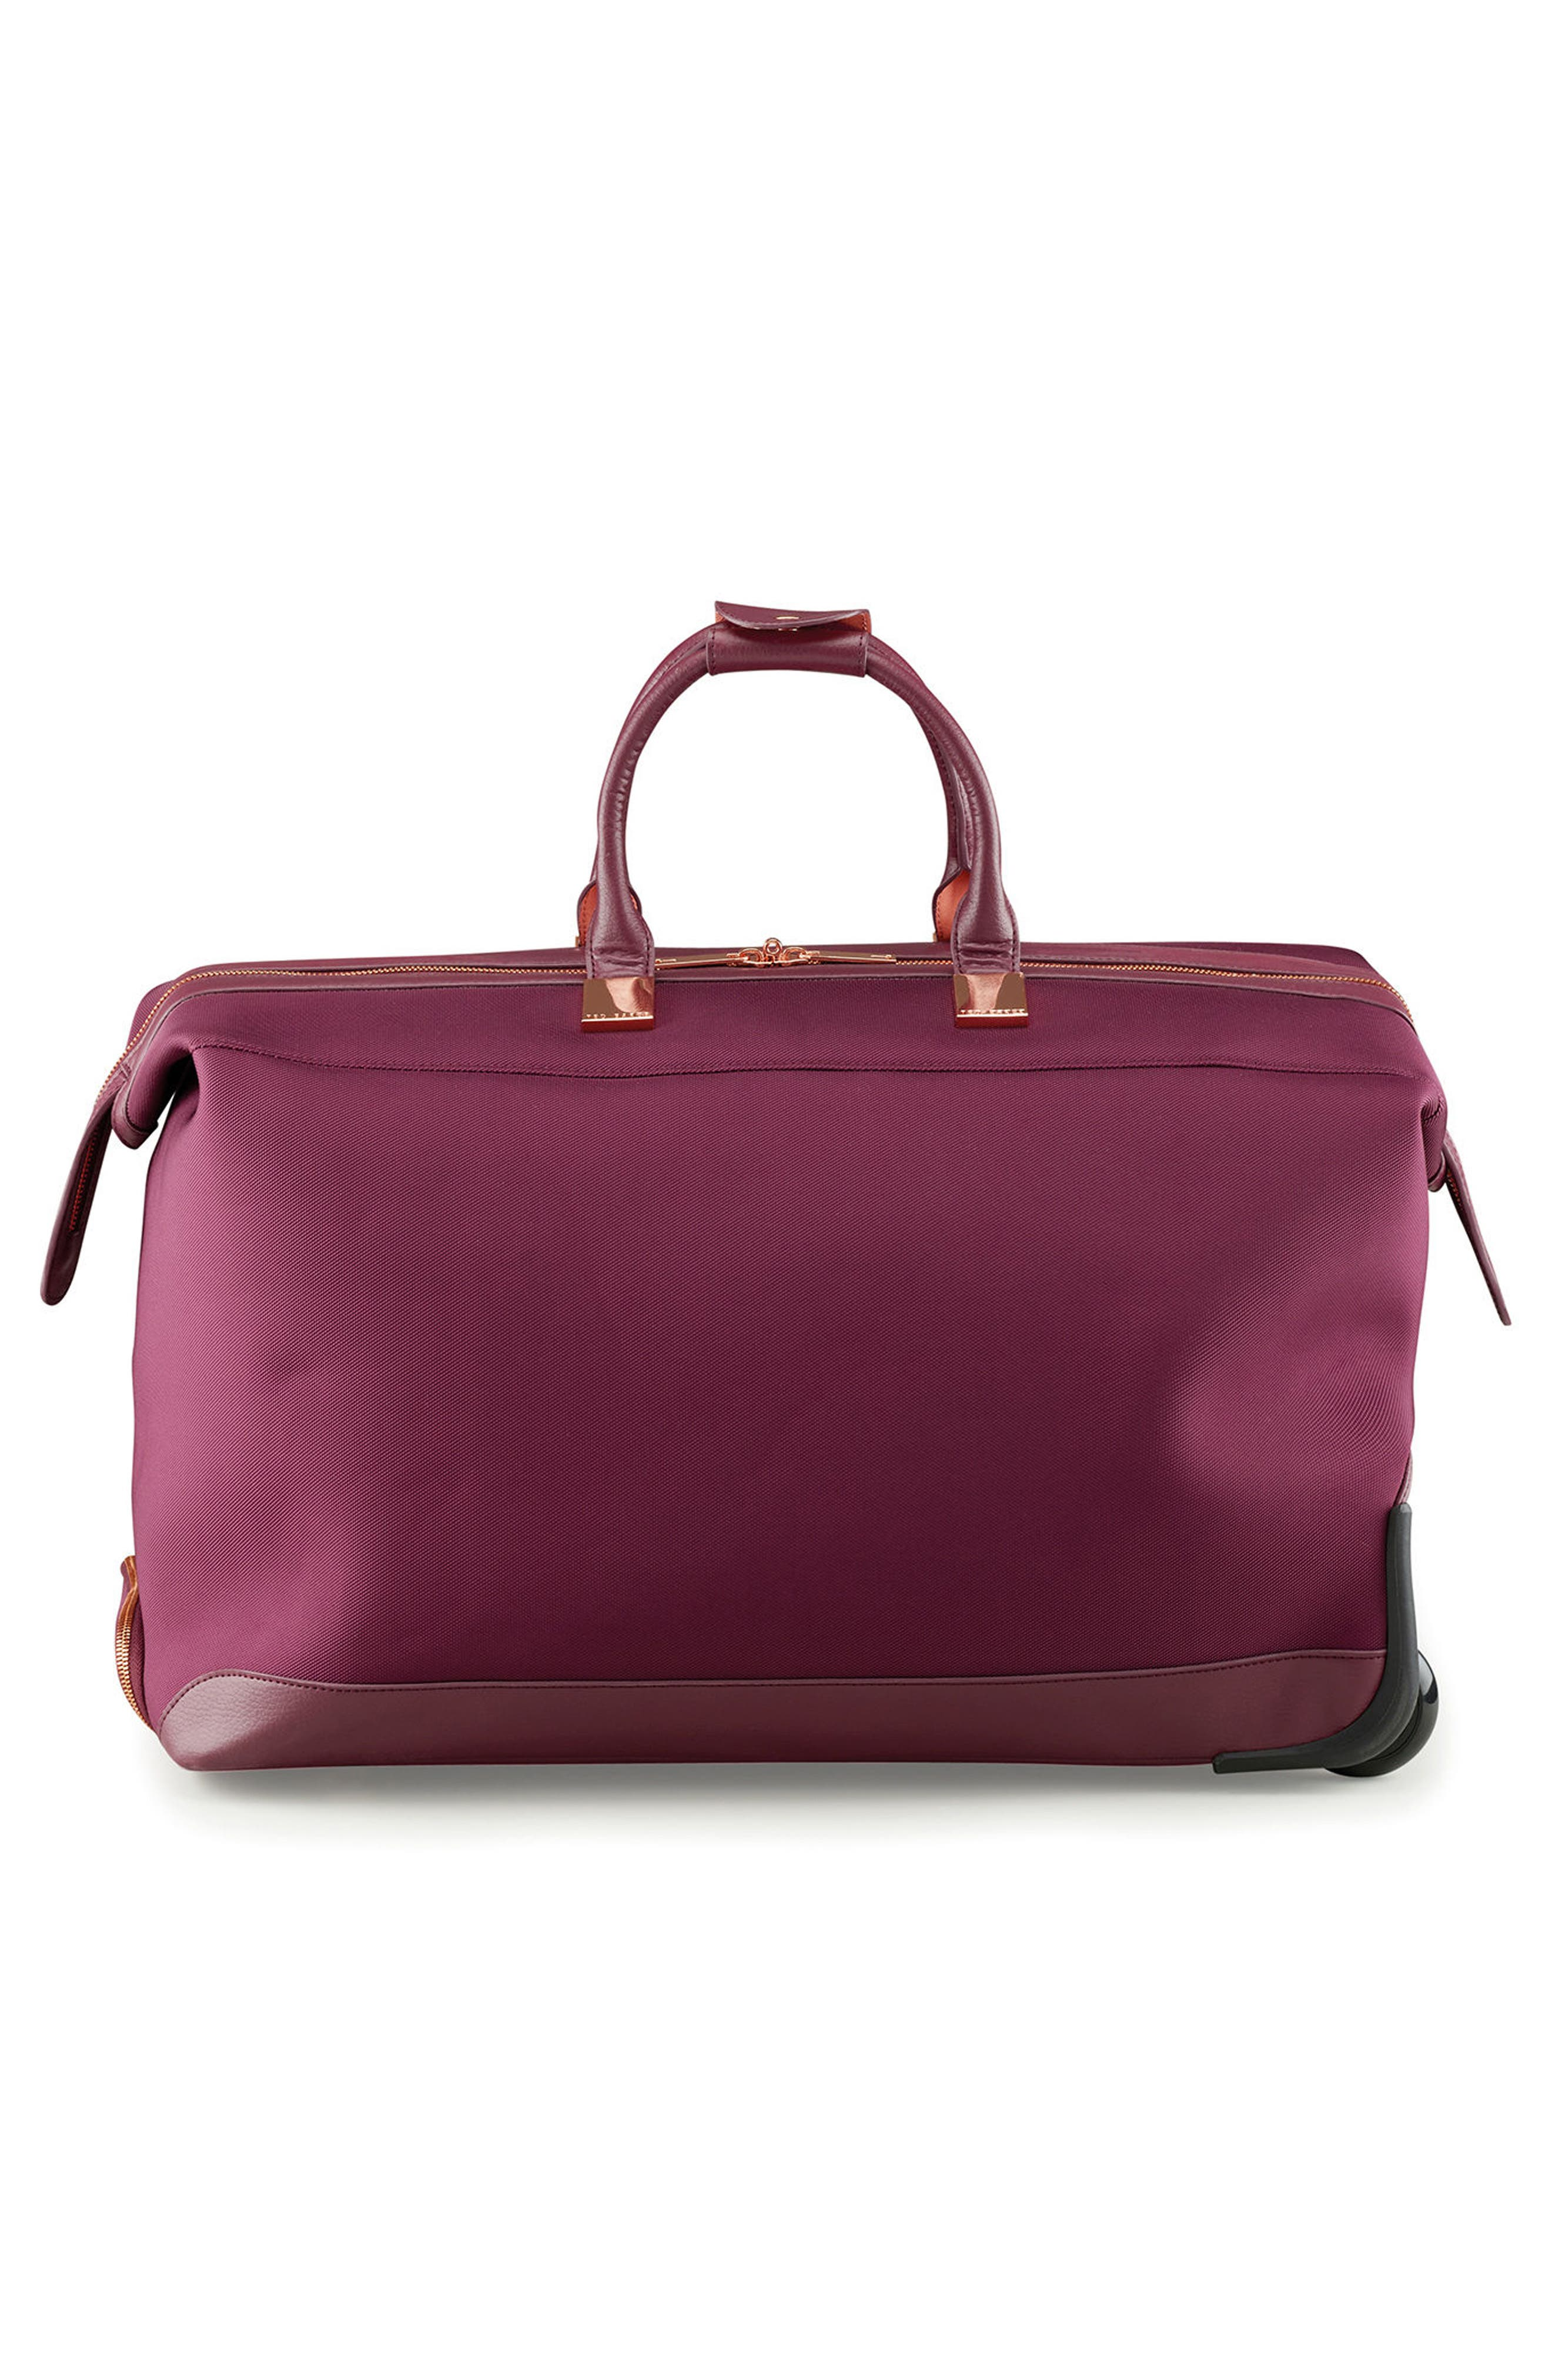 22-Inch Large Front Pocket Rolling Duffel Bag,                             Alternate thumbnail 3, color,                             BURGUNDY